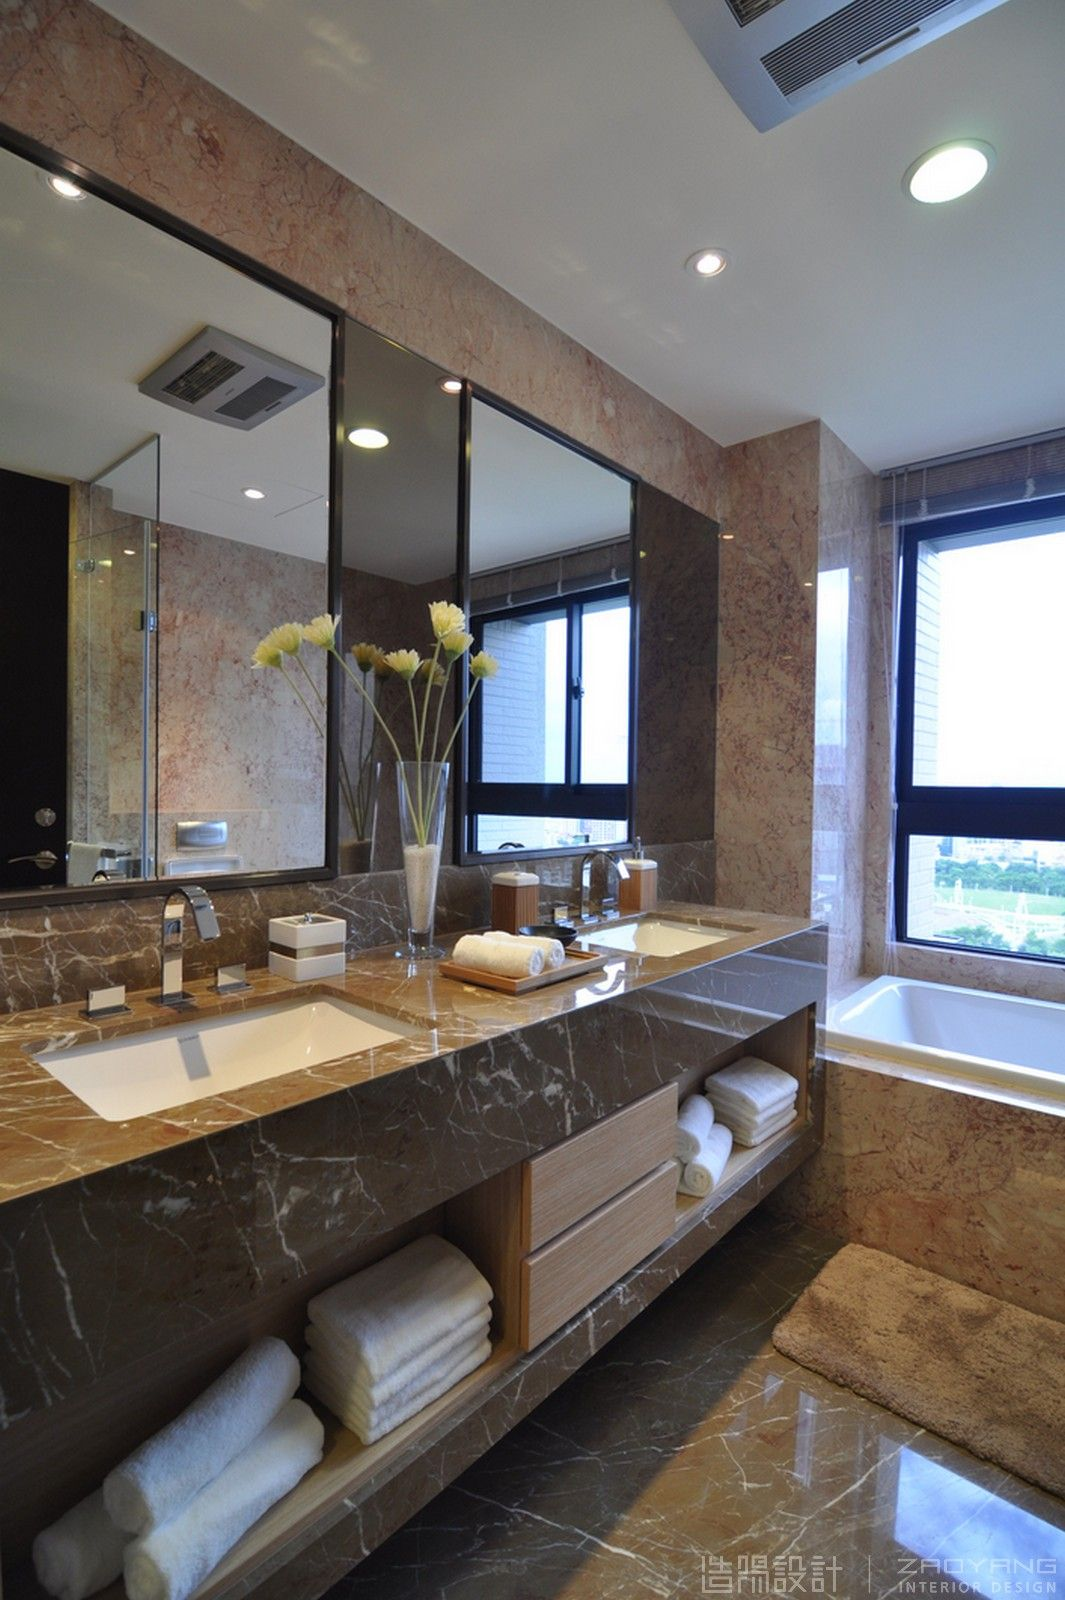 Bathroom designs bathrooms bath design also remodel ideas you must see for your lovely home dream rh pinterest